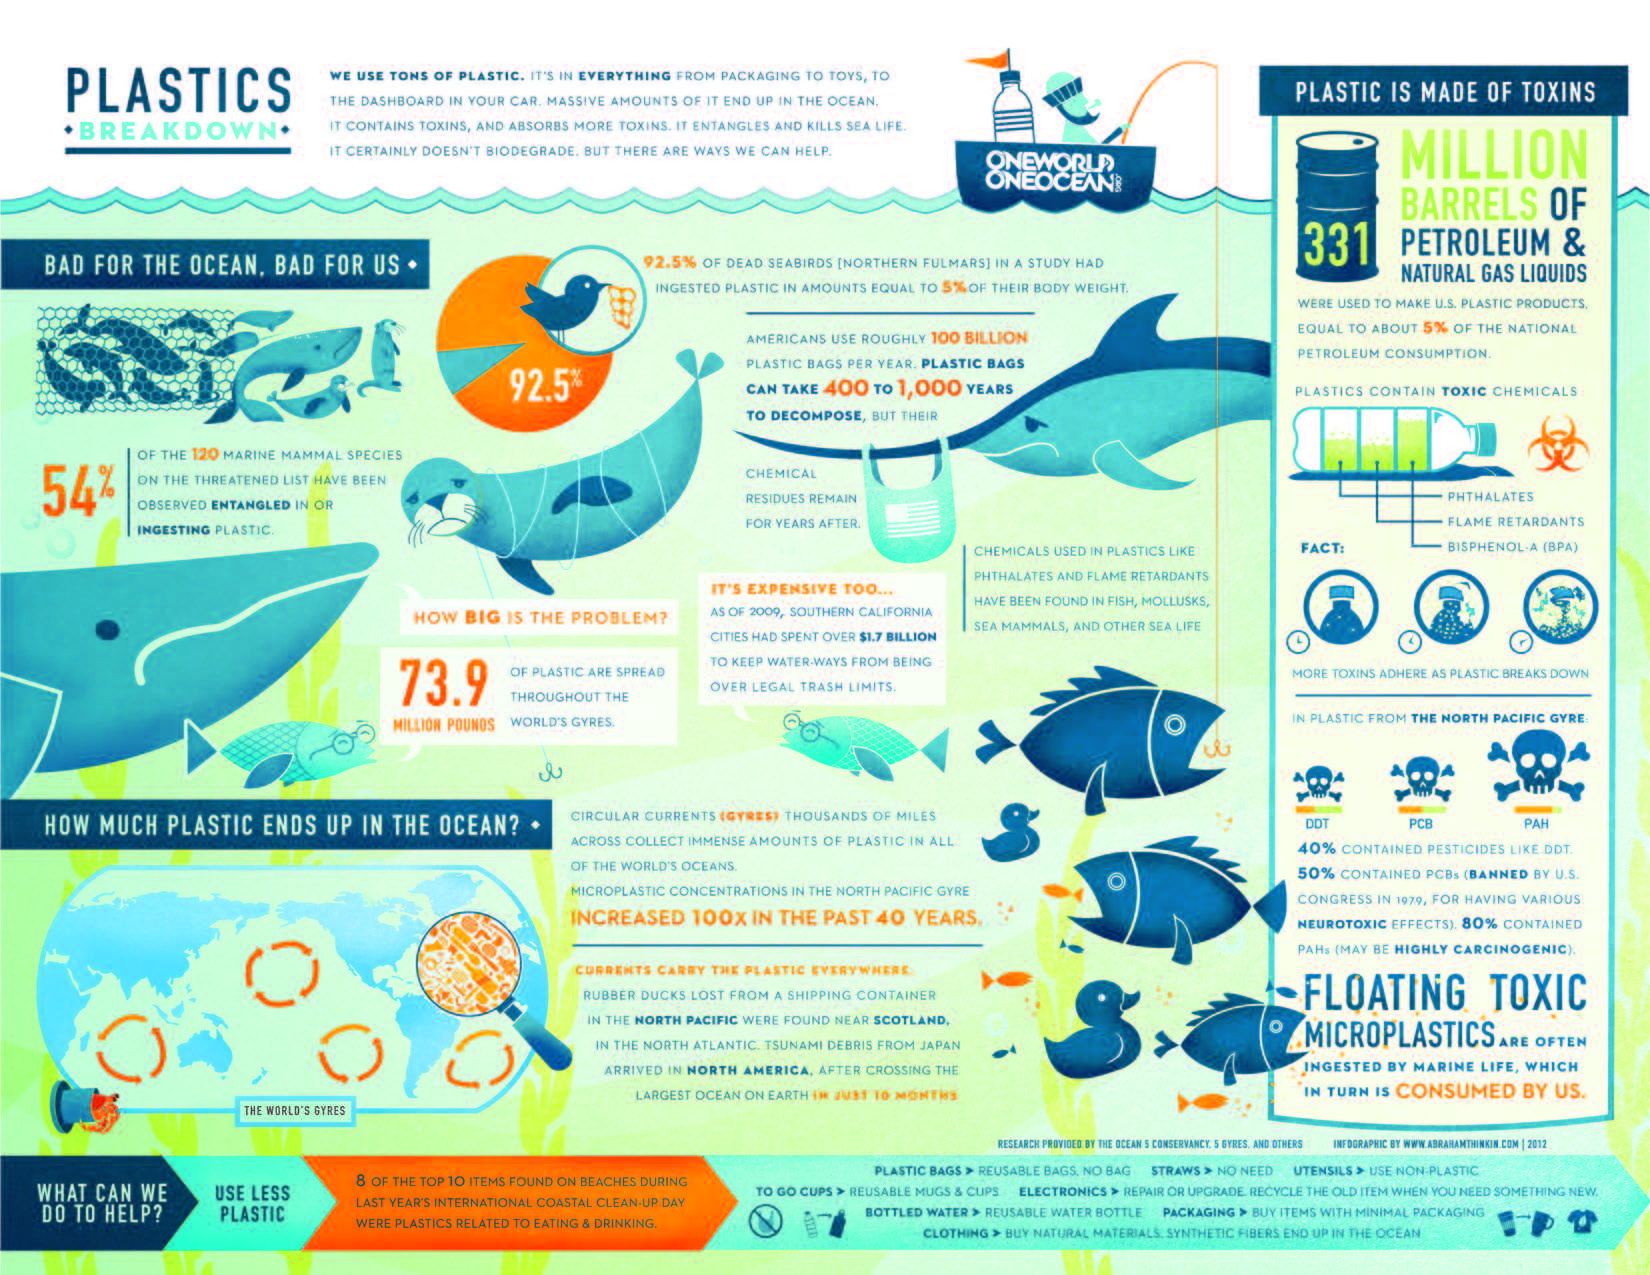 Everything You Need To Know About The Problem Of Plastics In Our #ocean. (INFOGRAPHIC